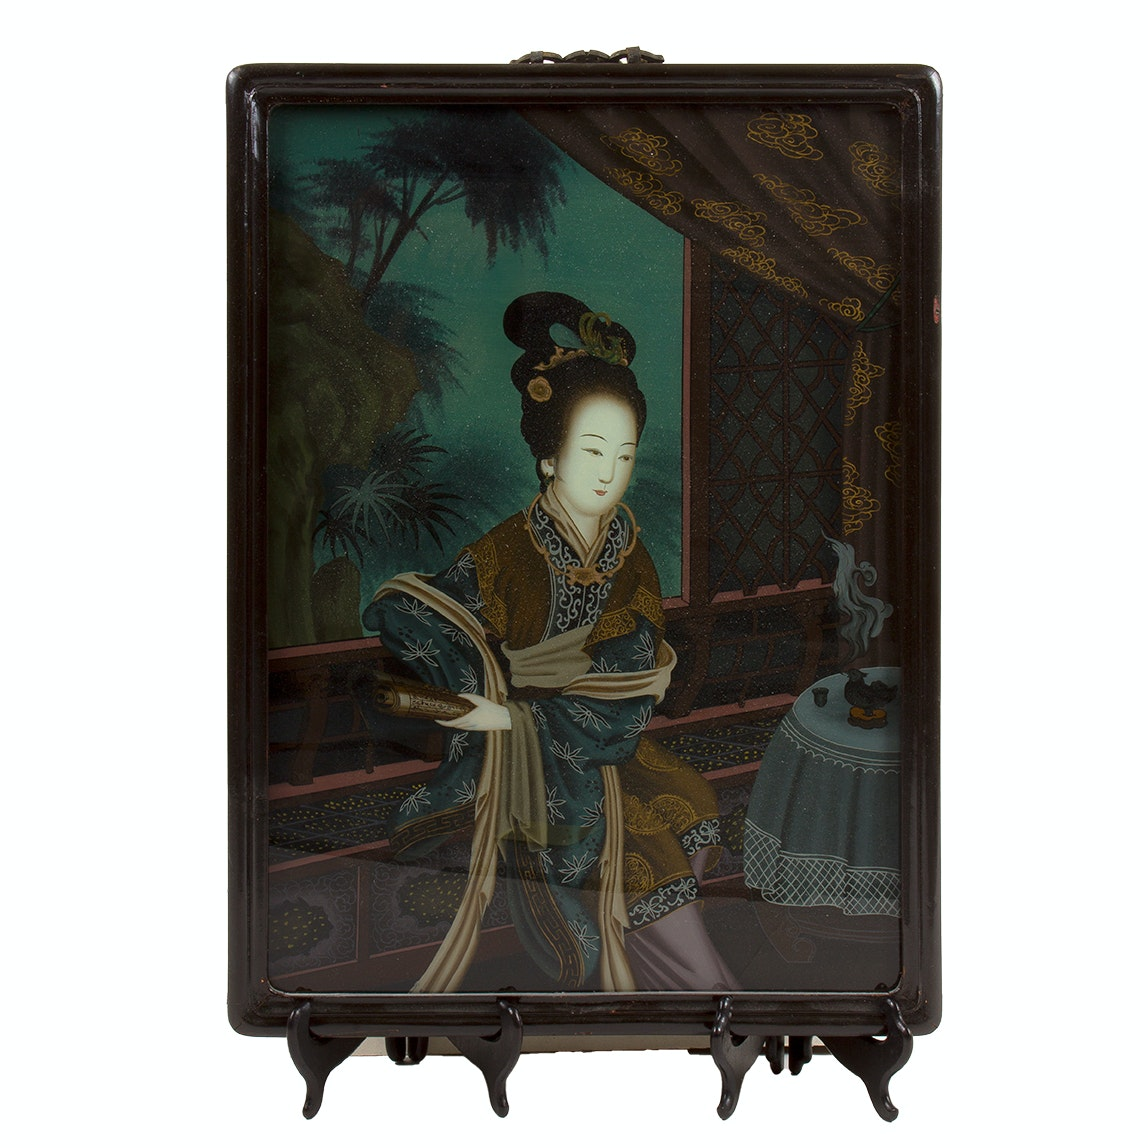 19th Century Eglomise Chinese Reverse Painting on Glass